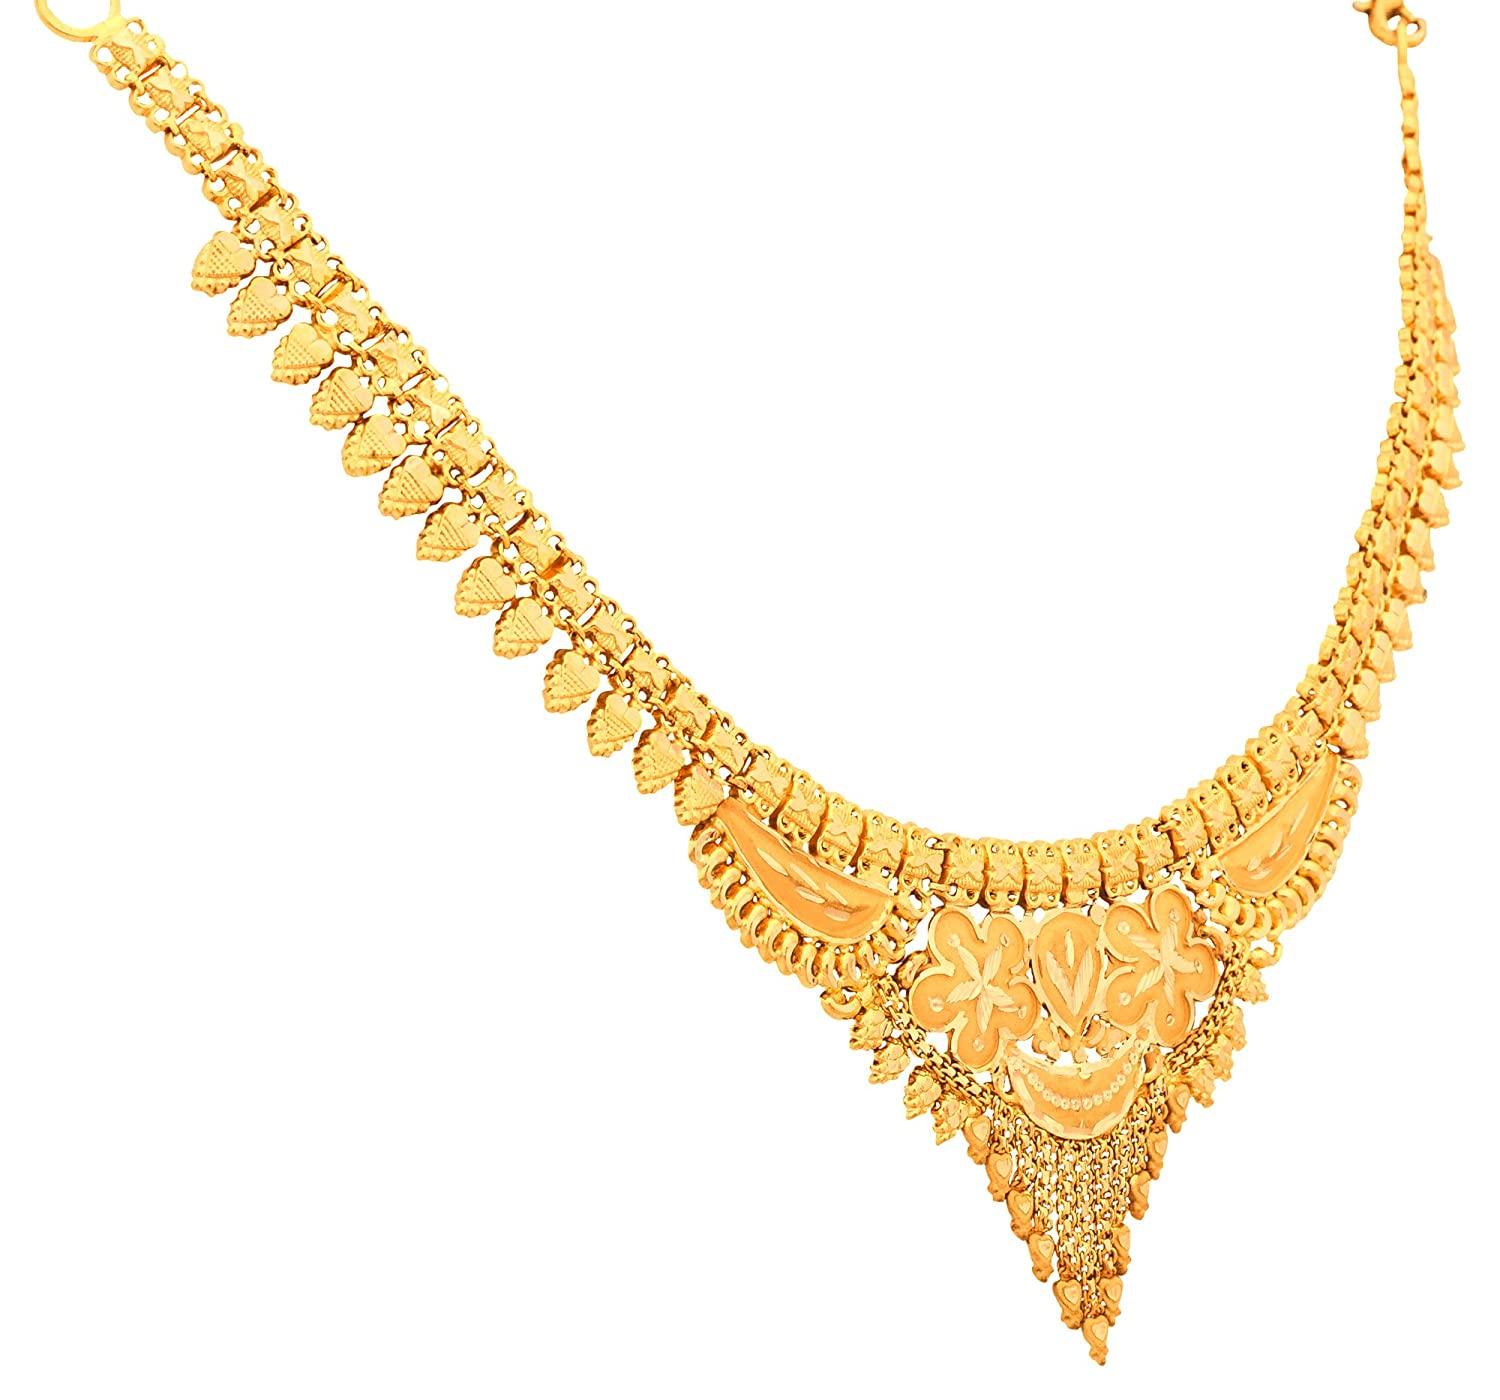 Buy senco gold 22k yellow gold chain necklace online at low prices buy senco gold 22k yellow gold chain necklace online at low prices in india amazon jewellery store amazon aloadofball Images